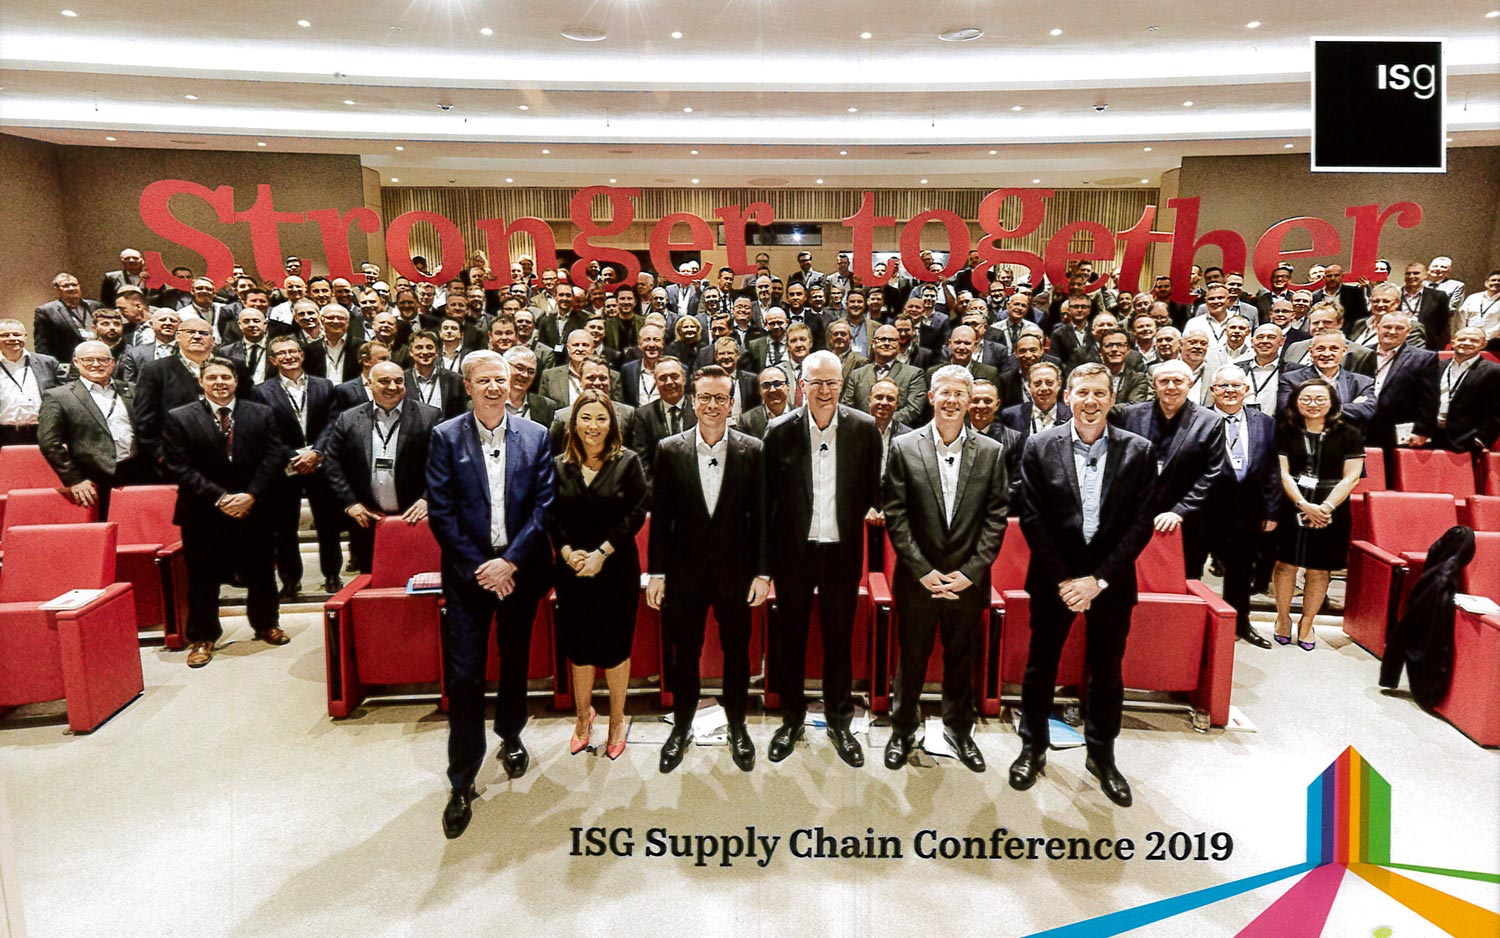 Hensall nominated for 'Dream Smart' award at ISG Supply Chain Conference 2018